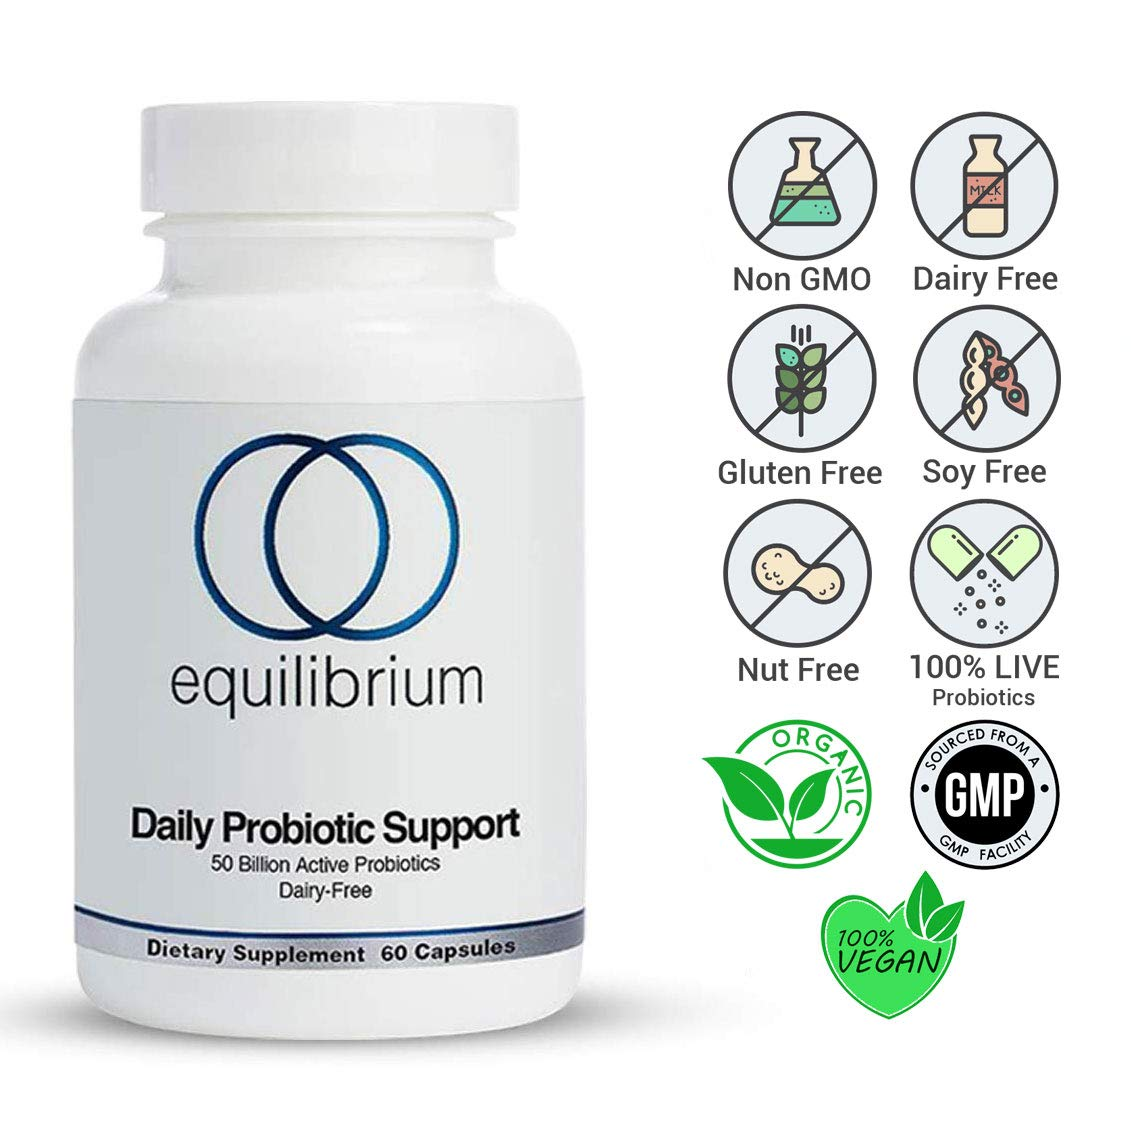 Equilibrium Nutrition Daily Probiotic Support, Dairy Free, High-Potency, Natural,50 Billion Live Probiotics Strain, Helps Improve Digestion, Metabolism & Energy for Children and Adults. 60 Capsules. by Equilibrium Nutrition